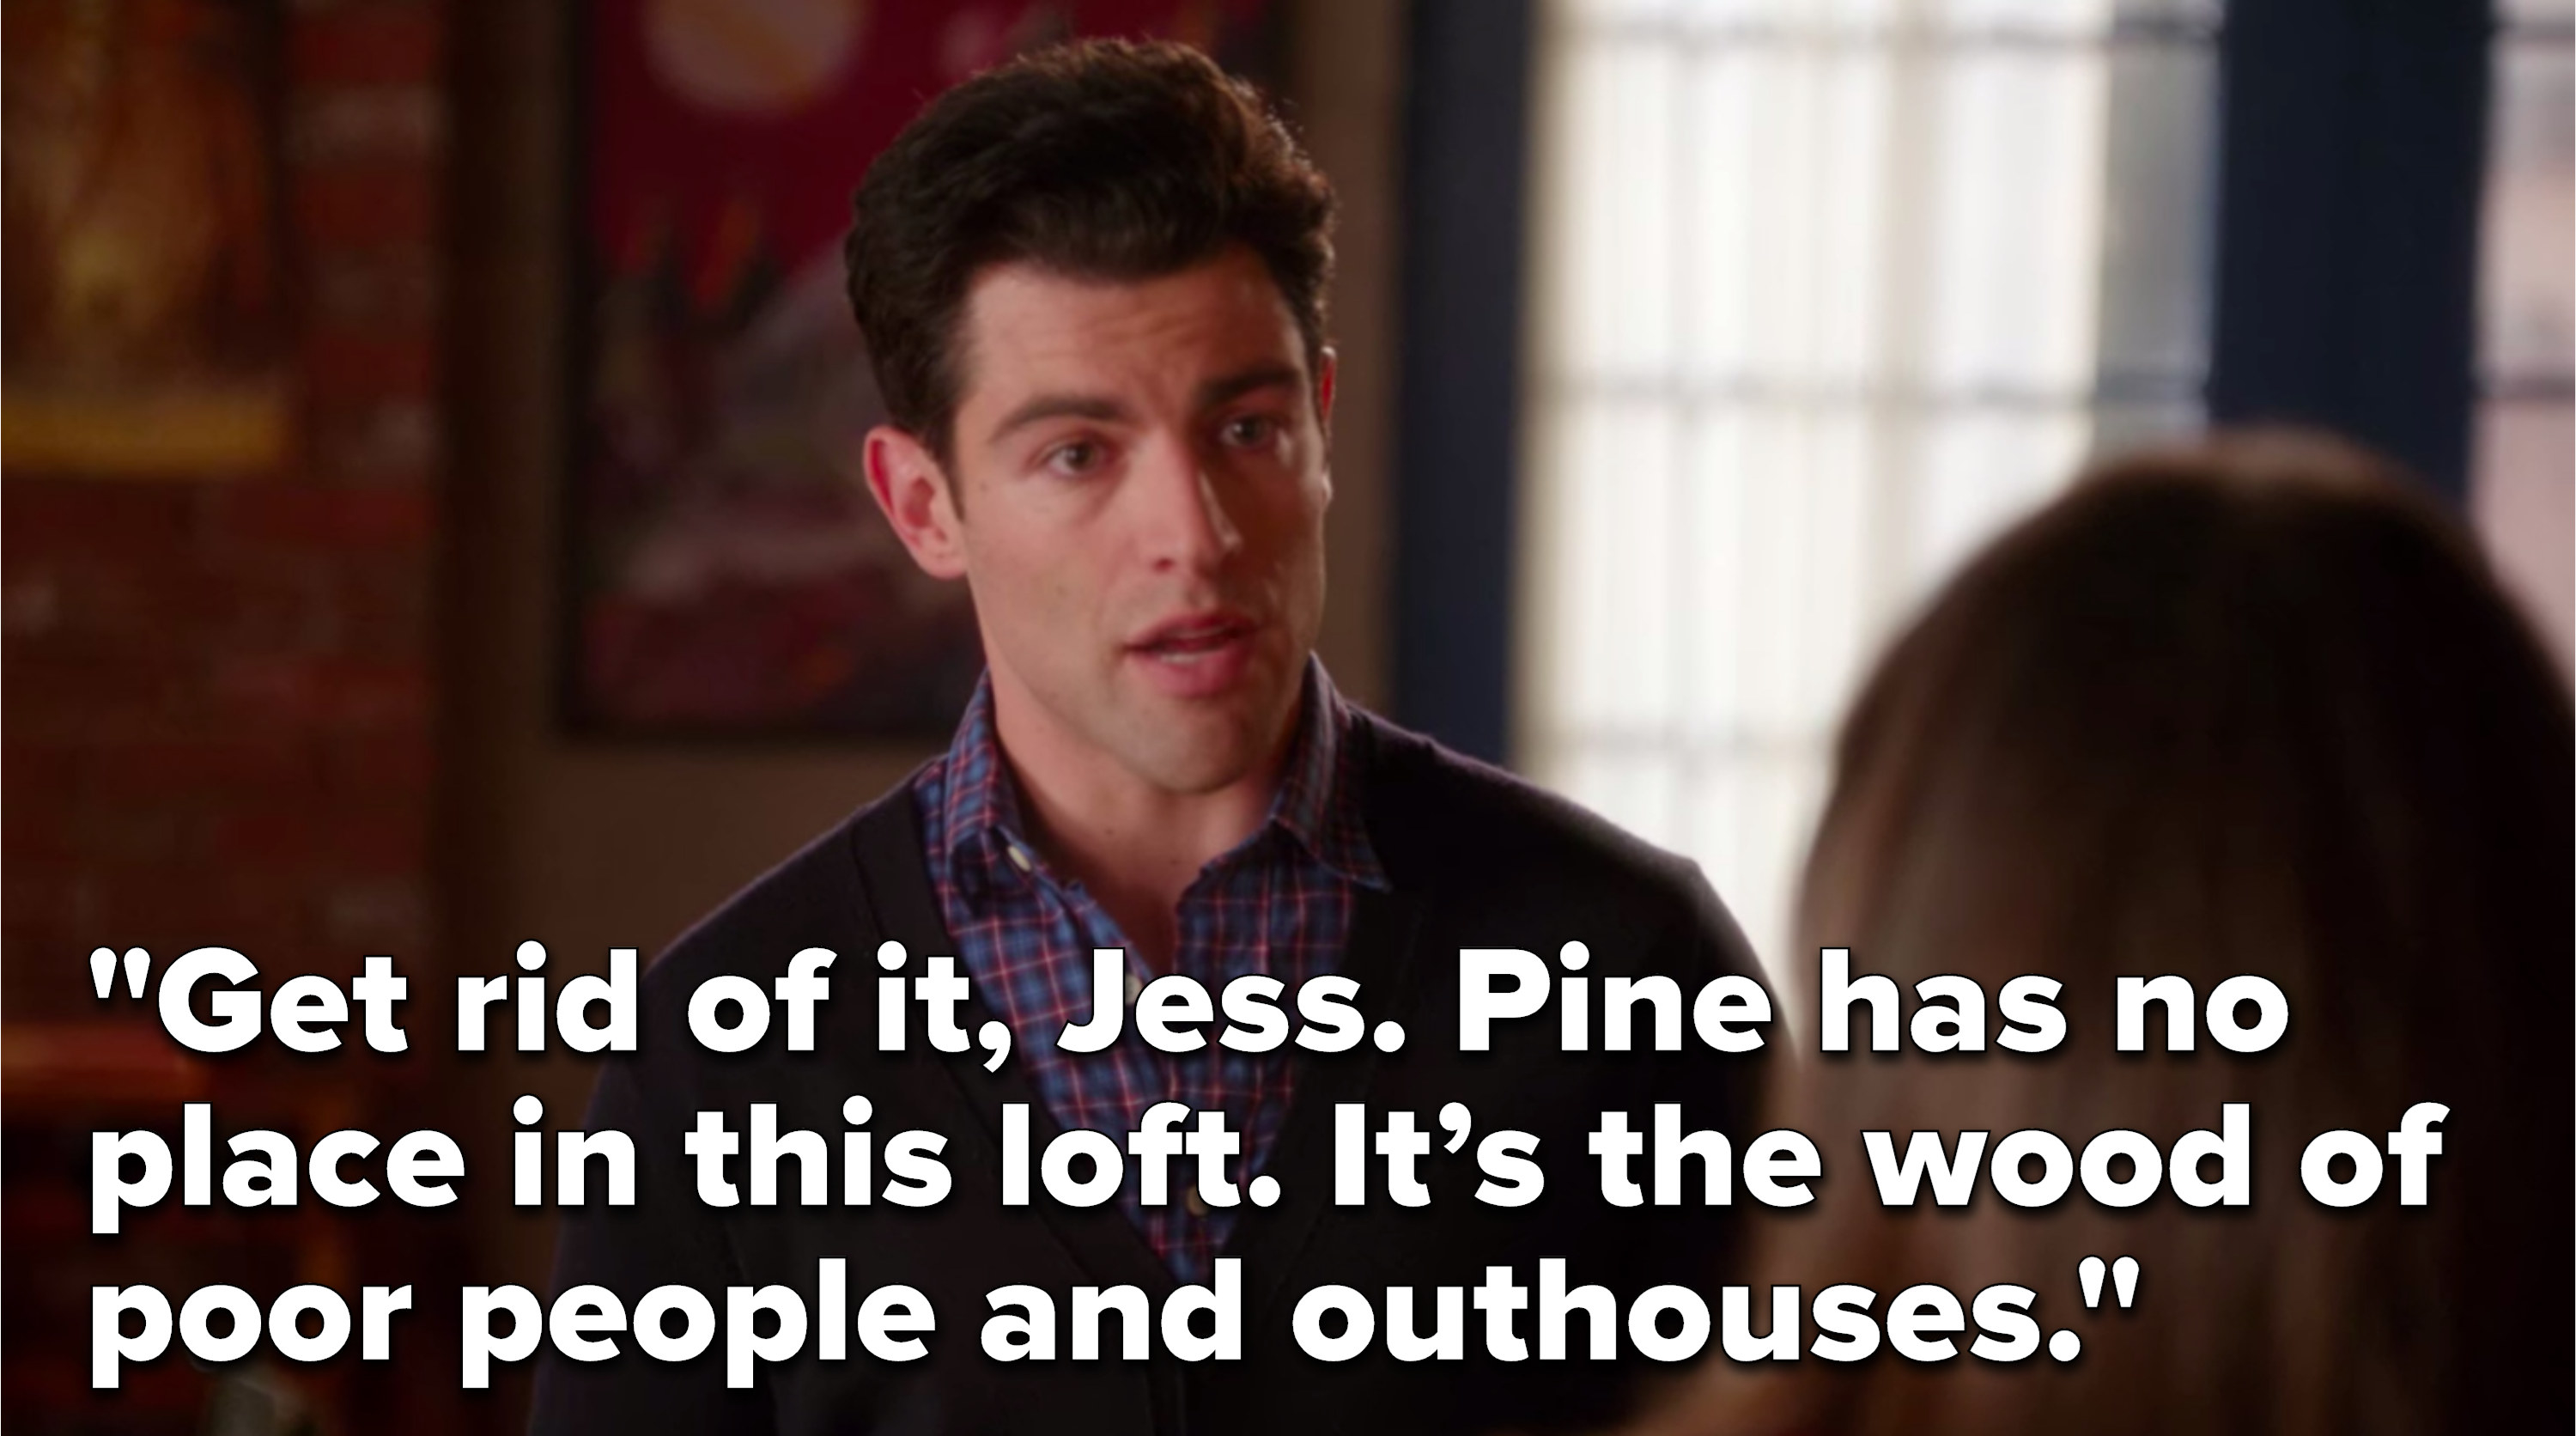 """Schmidt says, """"Get rid of it, Jess, pine has no place in this loft, it's the wood of poor people and outhouses"""""""